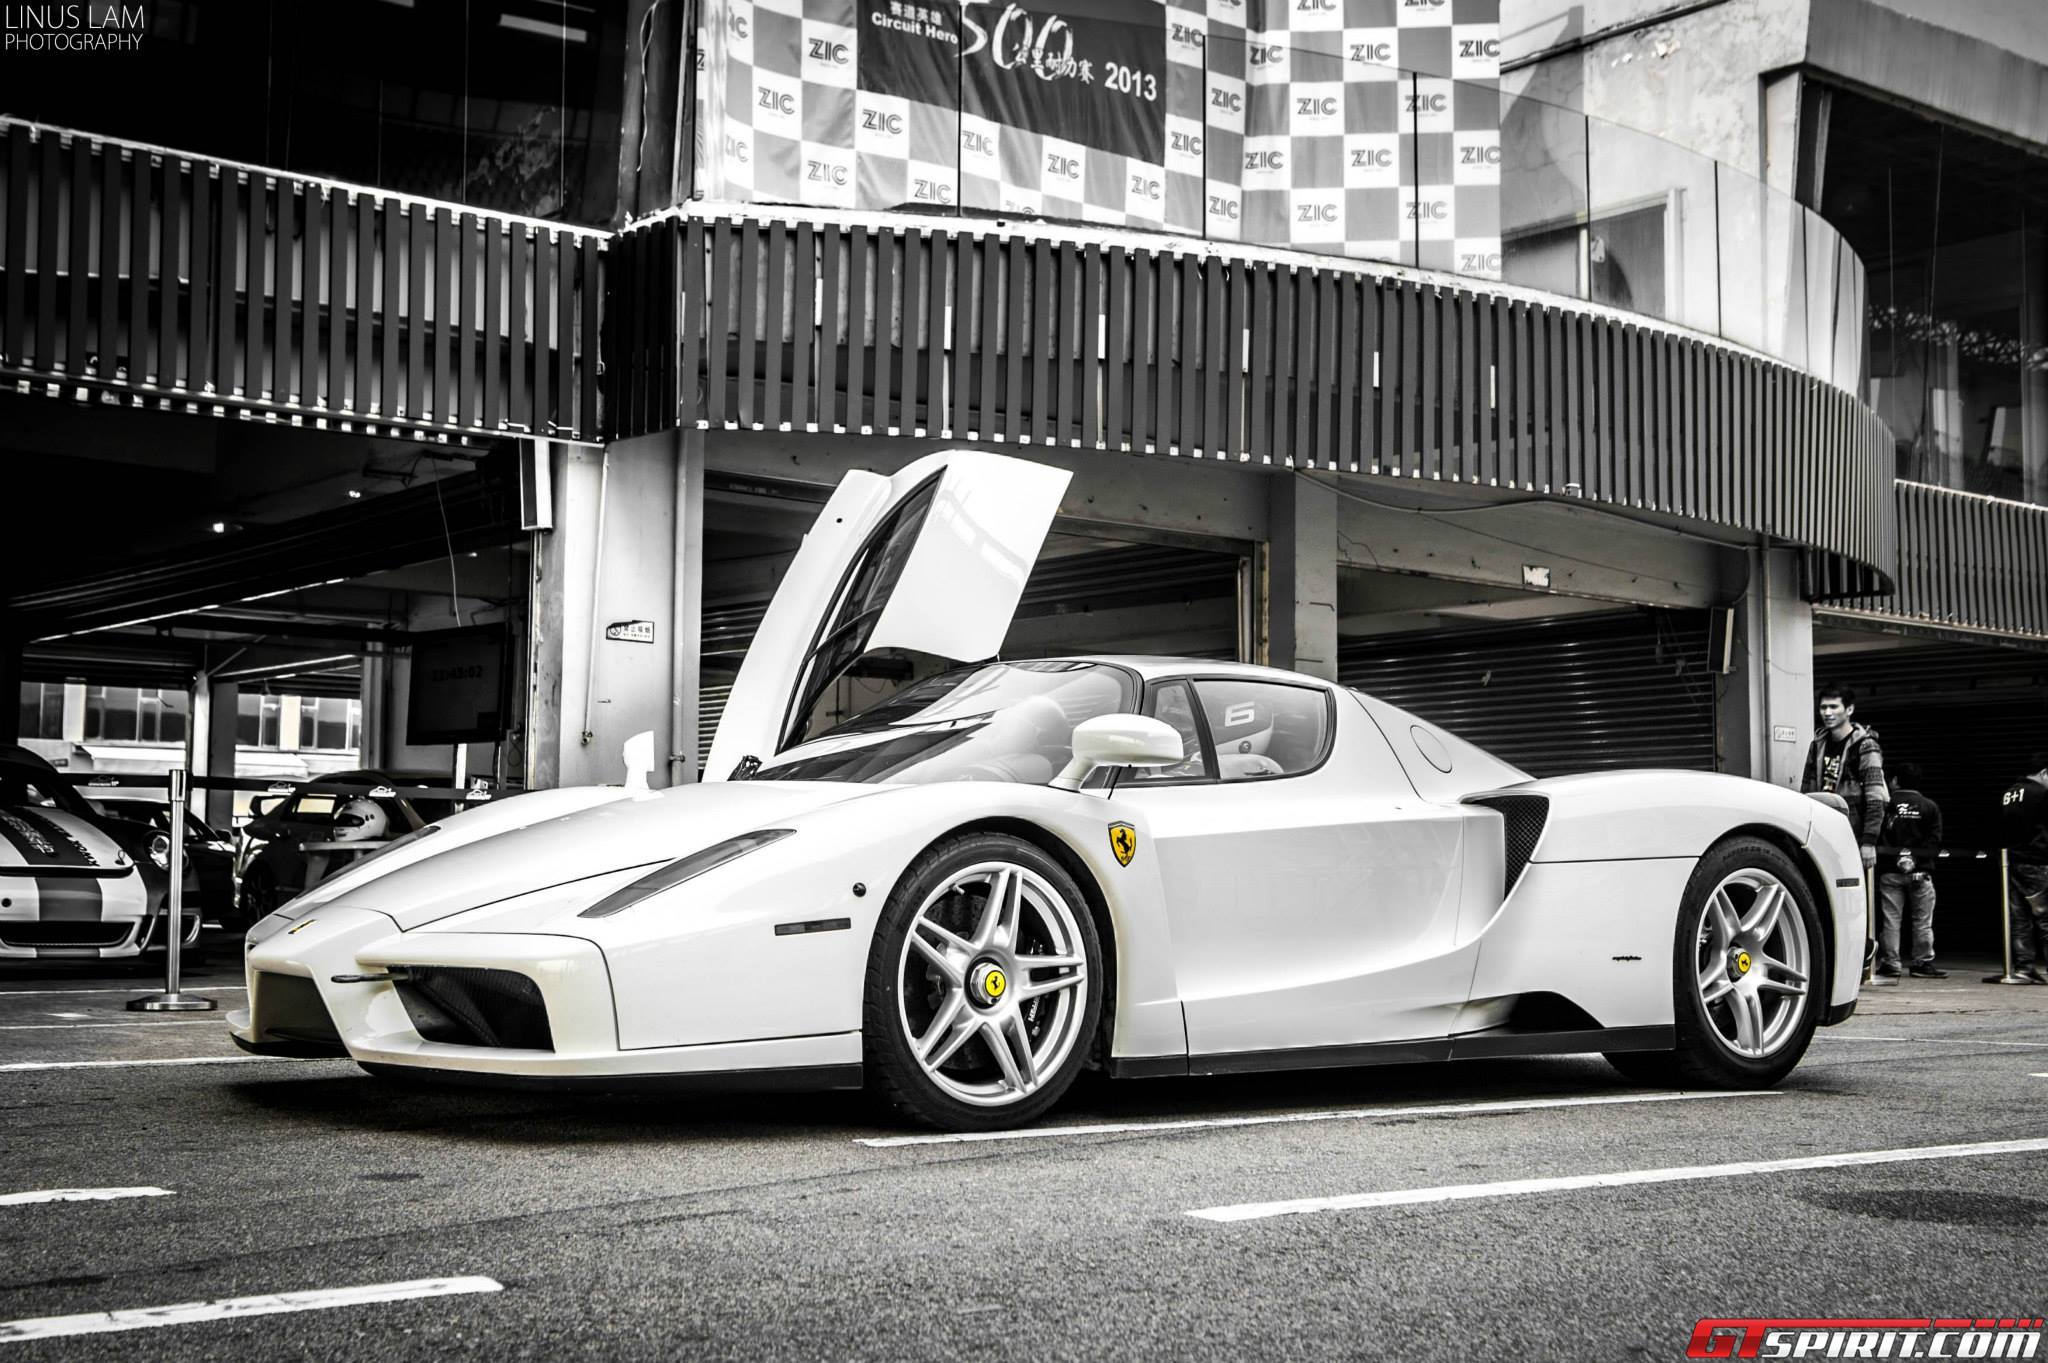 ferrari enzo 2014 black. the ferrari enzo one of greatest and most desirable cars past decade car is very rare only 400 were ever produced are 2014 black